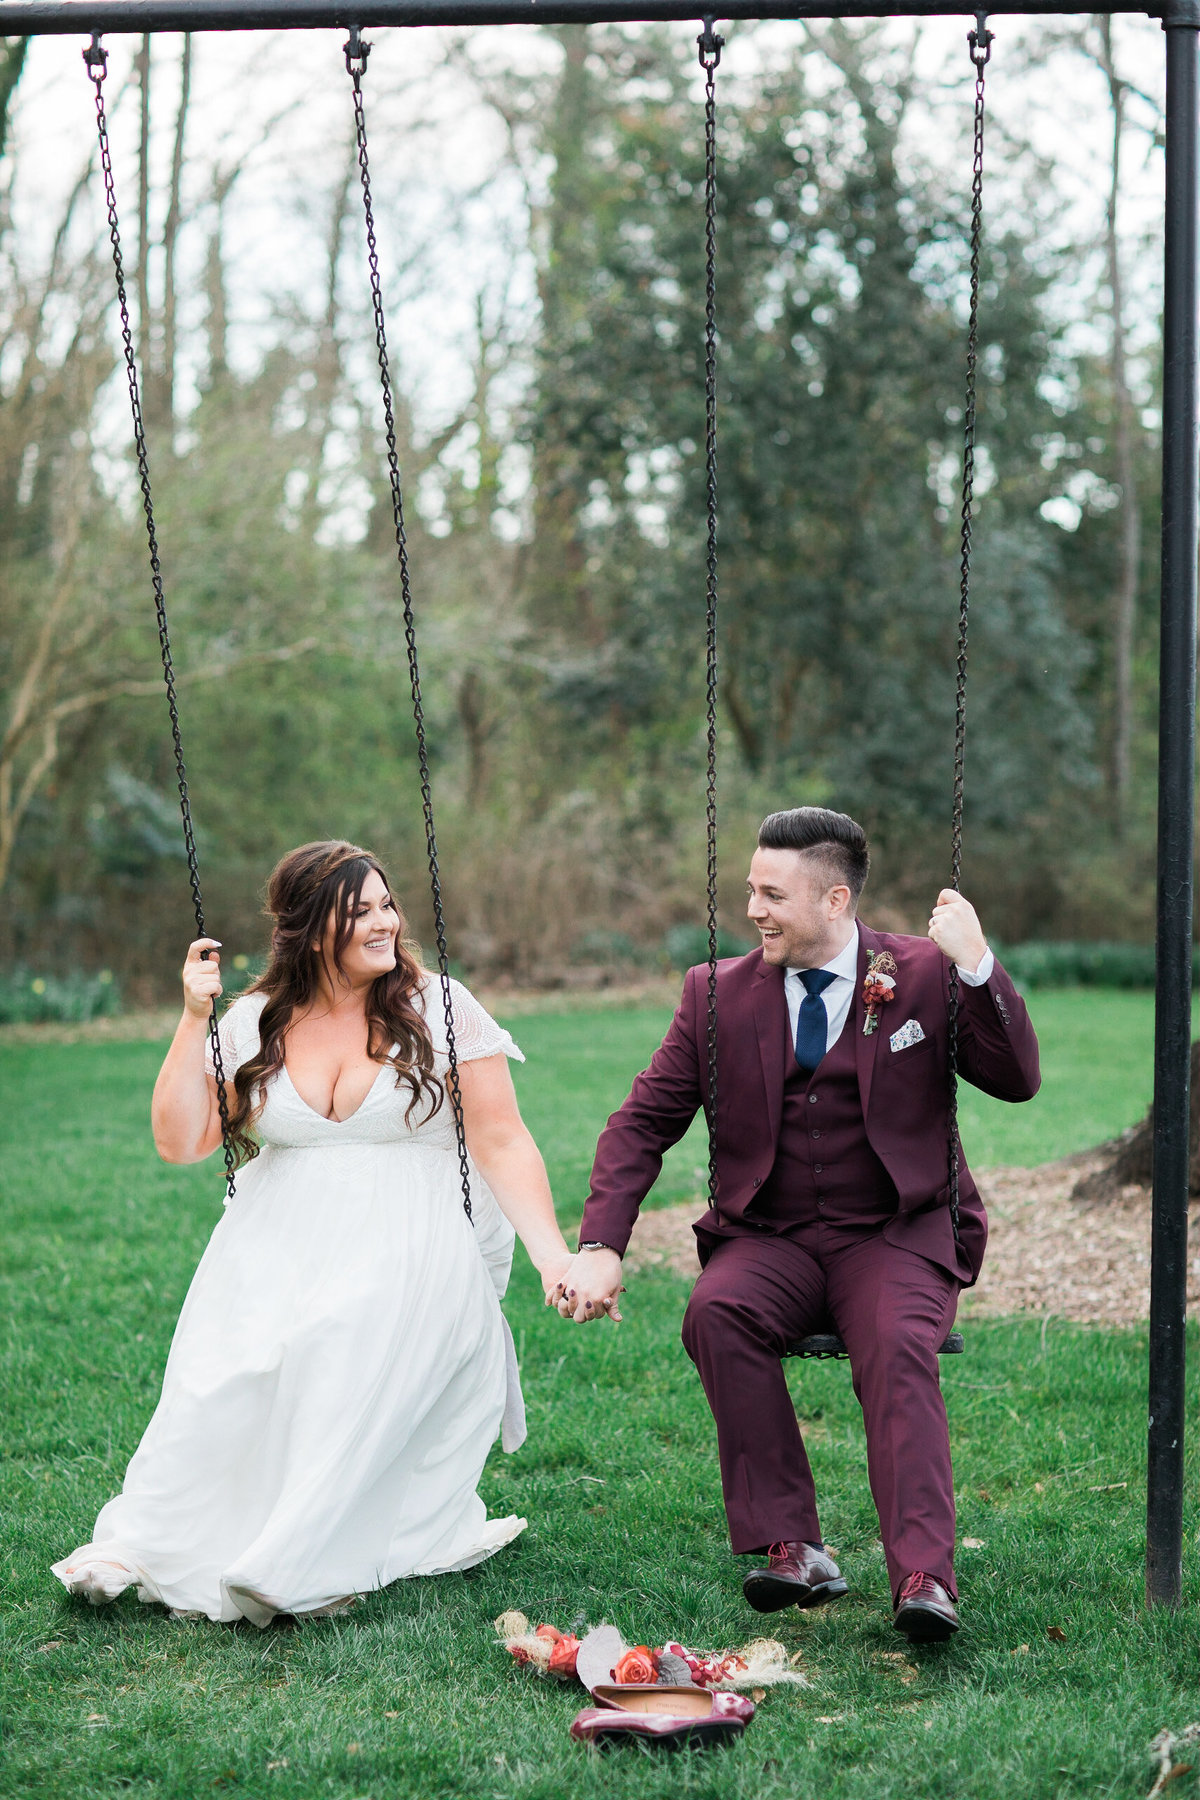 Wedding Photographer, couple swinging together